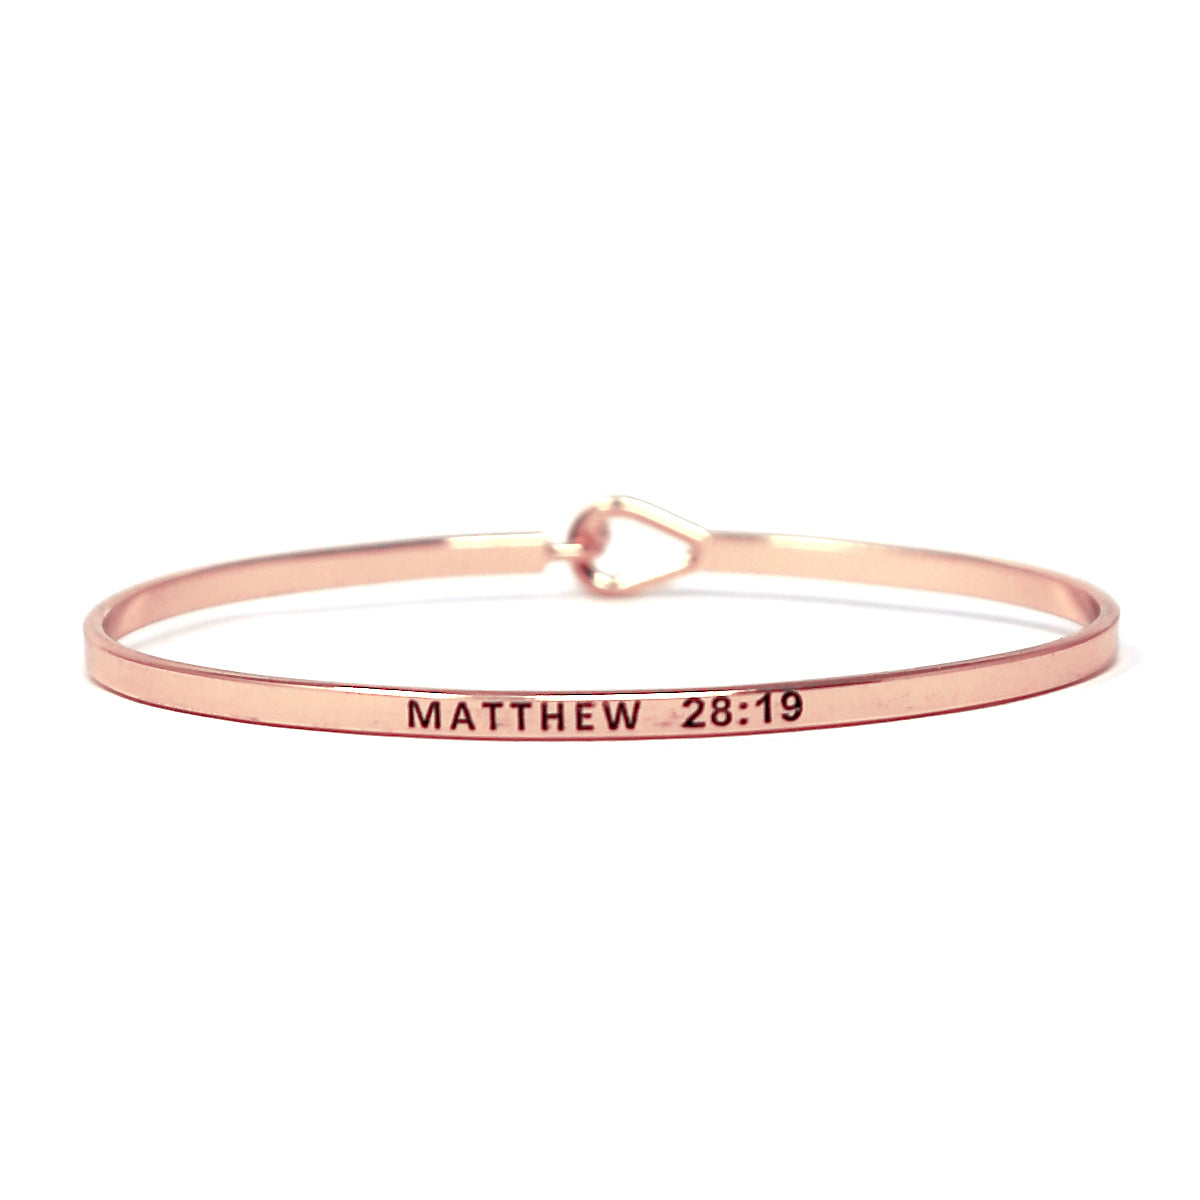 MATTHEW 28 : 19 Inspirational Message Bracelet